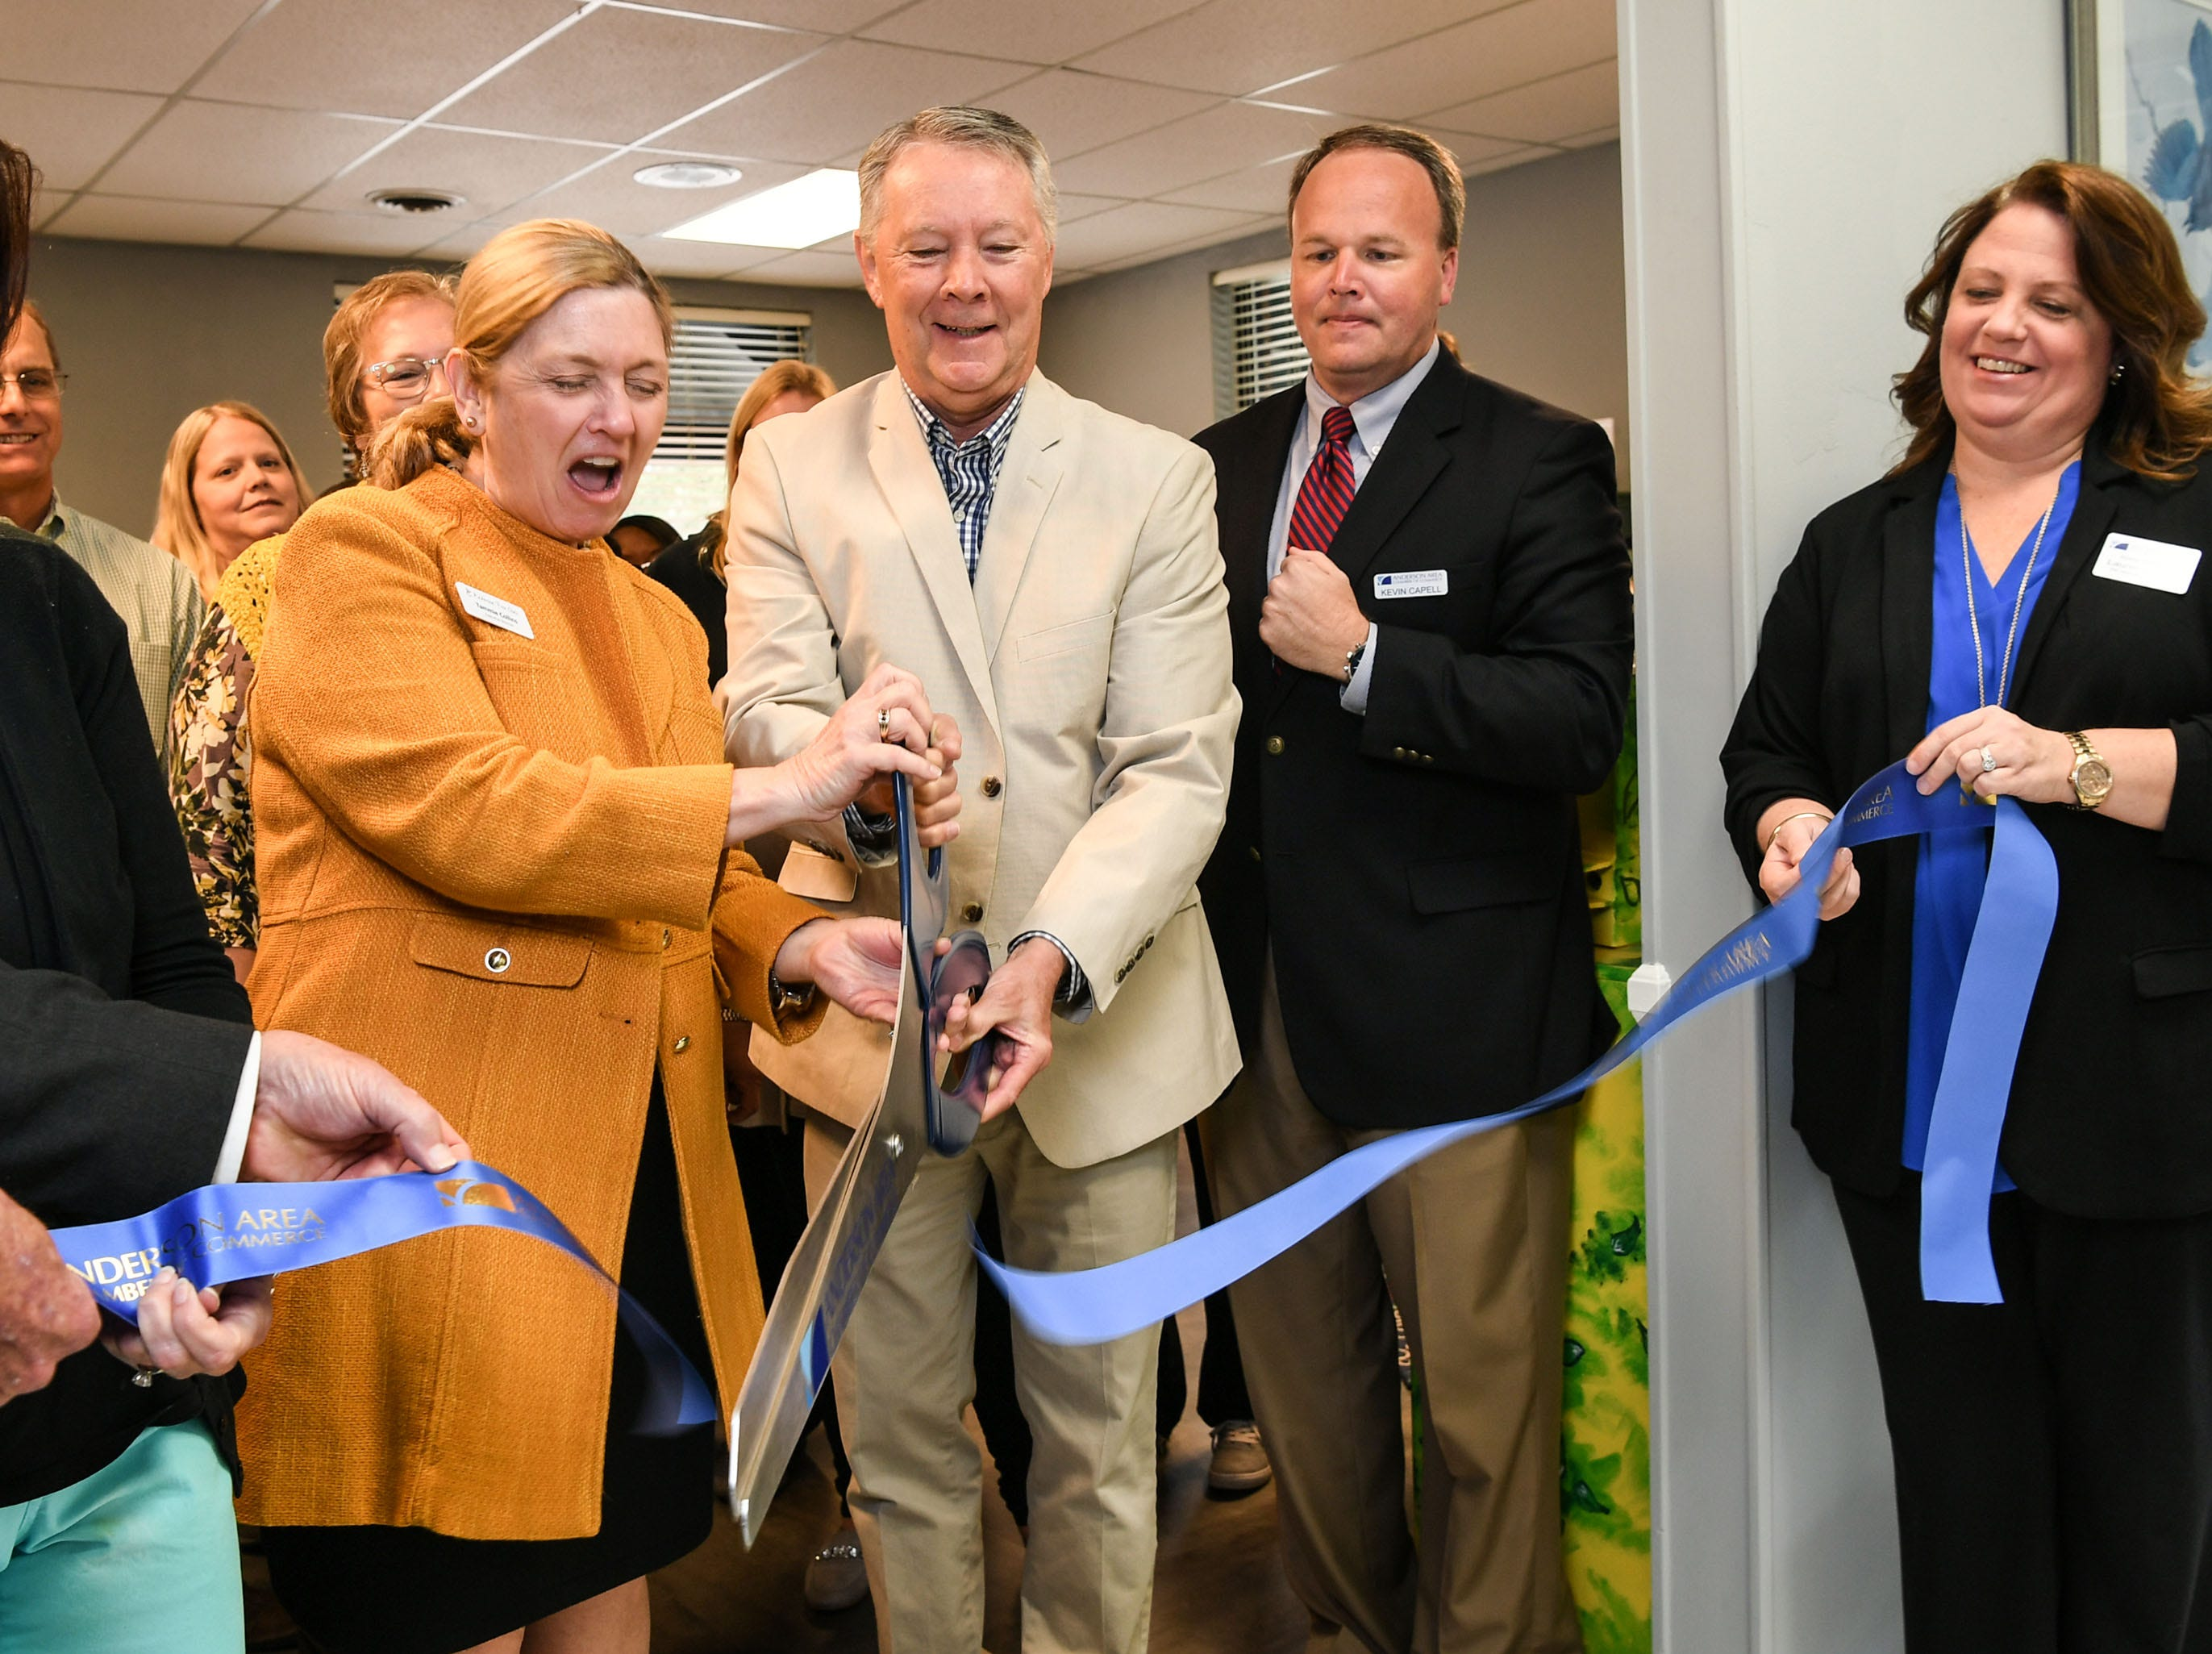 Tammie Collins, left, executive director of the Anderson Free Clinic, cuts a ribbon with vision clinic Dr. Jim Chamberlain, at the clinic in Anderson Tuesday. The free clinic, open since 1984, recently added dental to the medical and pharmacy, and now has vision care.